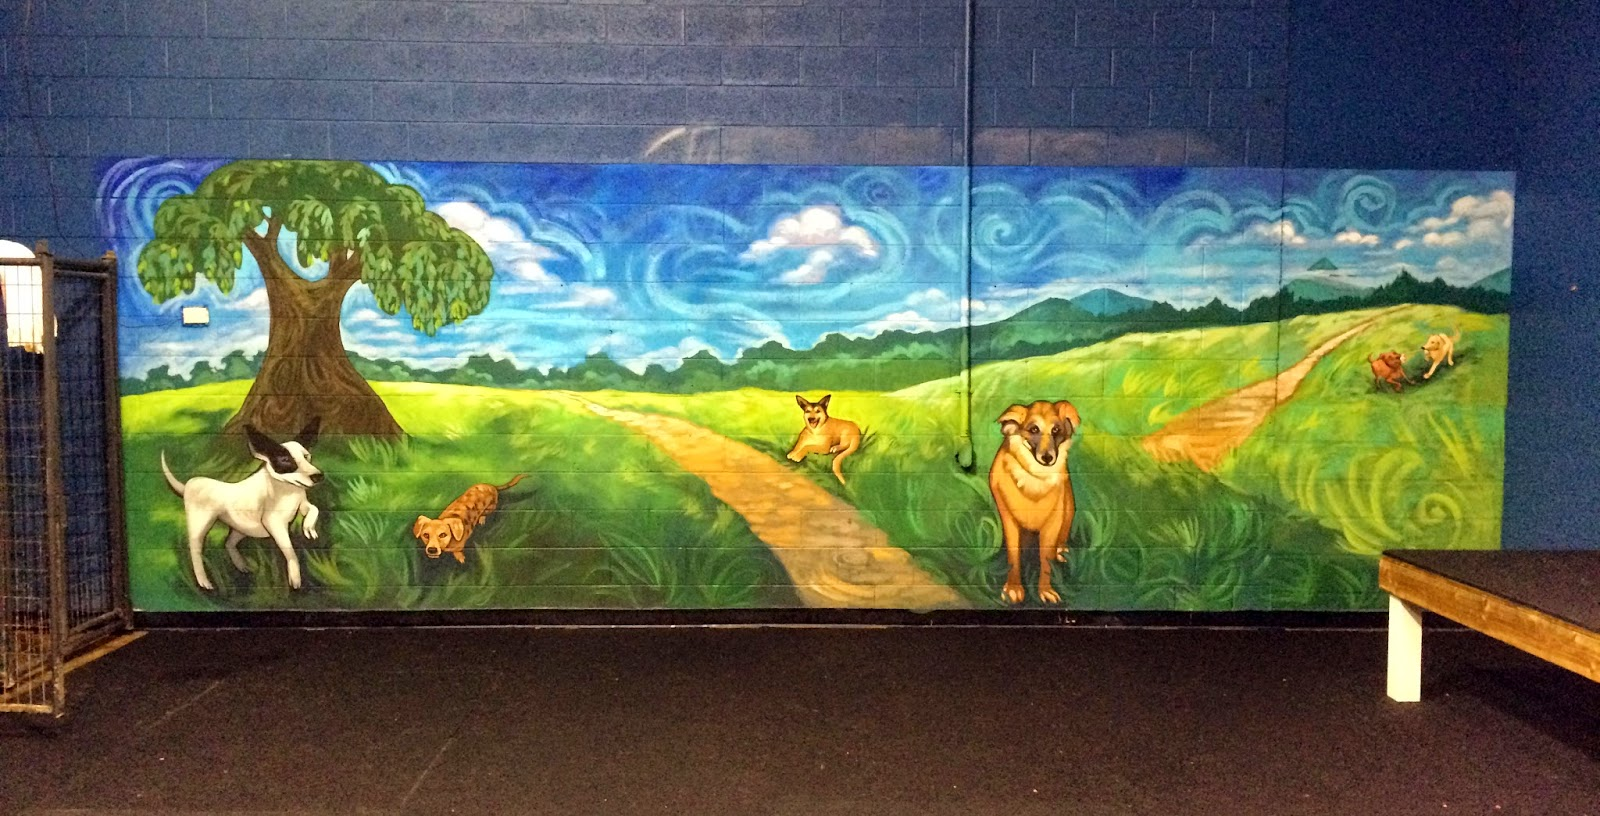 the talking walls doggie daycare mural preschool wall murals daycare murals playroom mural